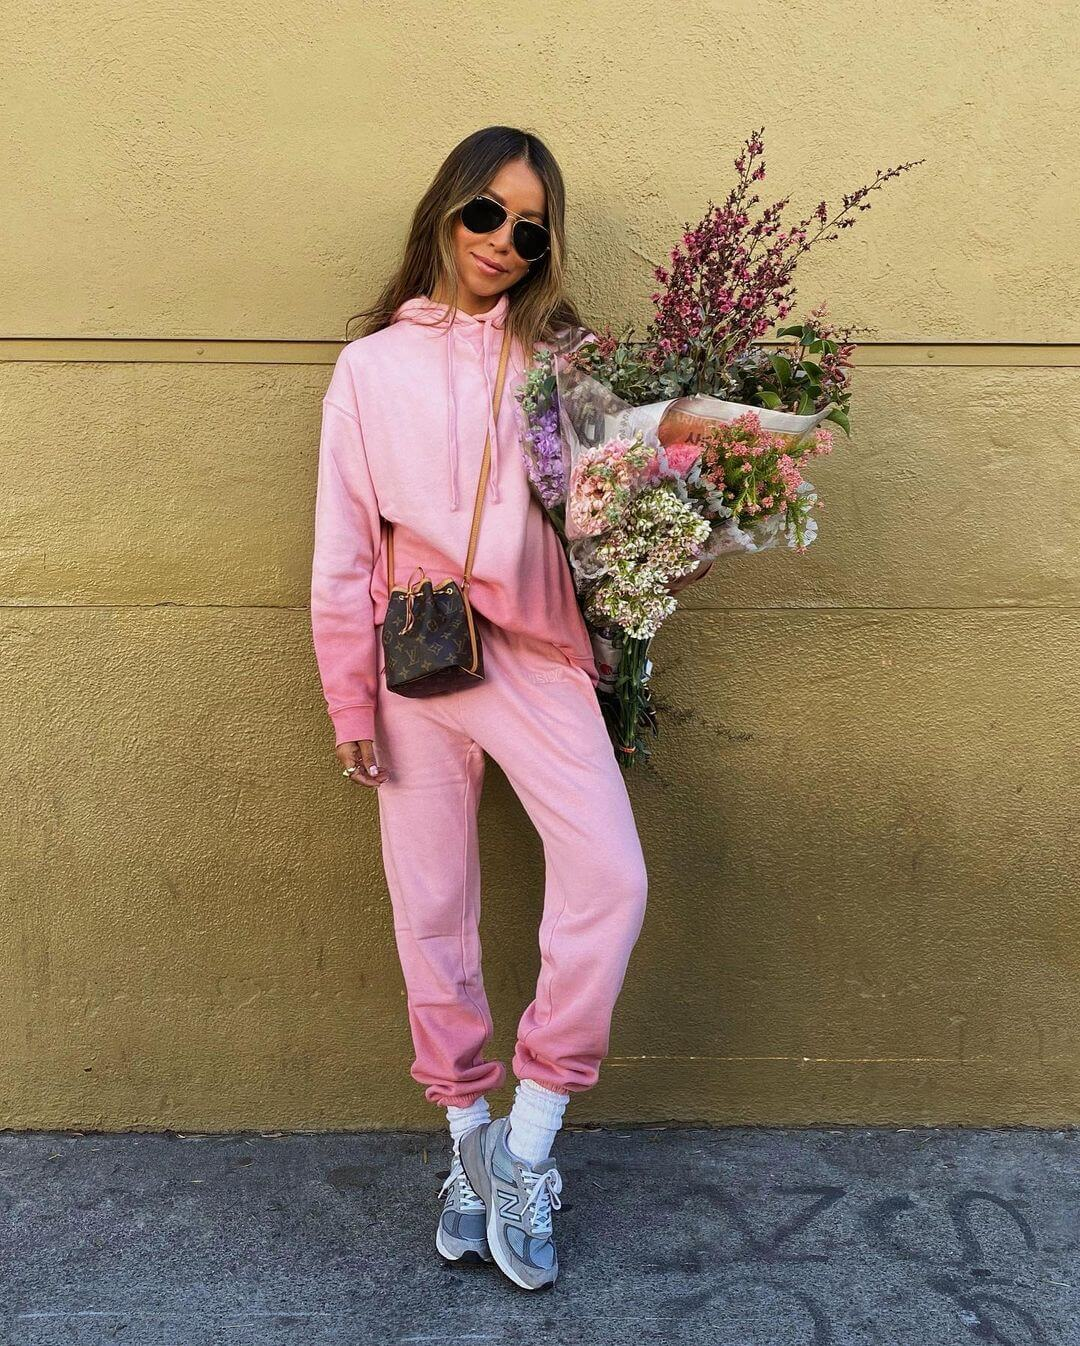 Upgrade Your Loungewear With These Bold Matching Sets